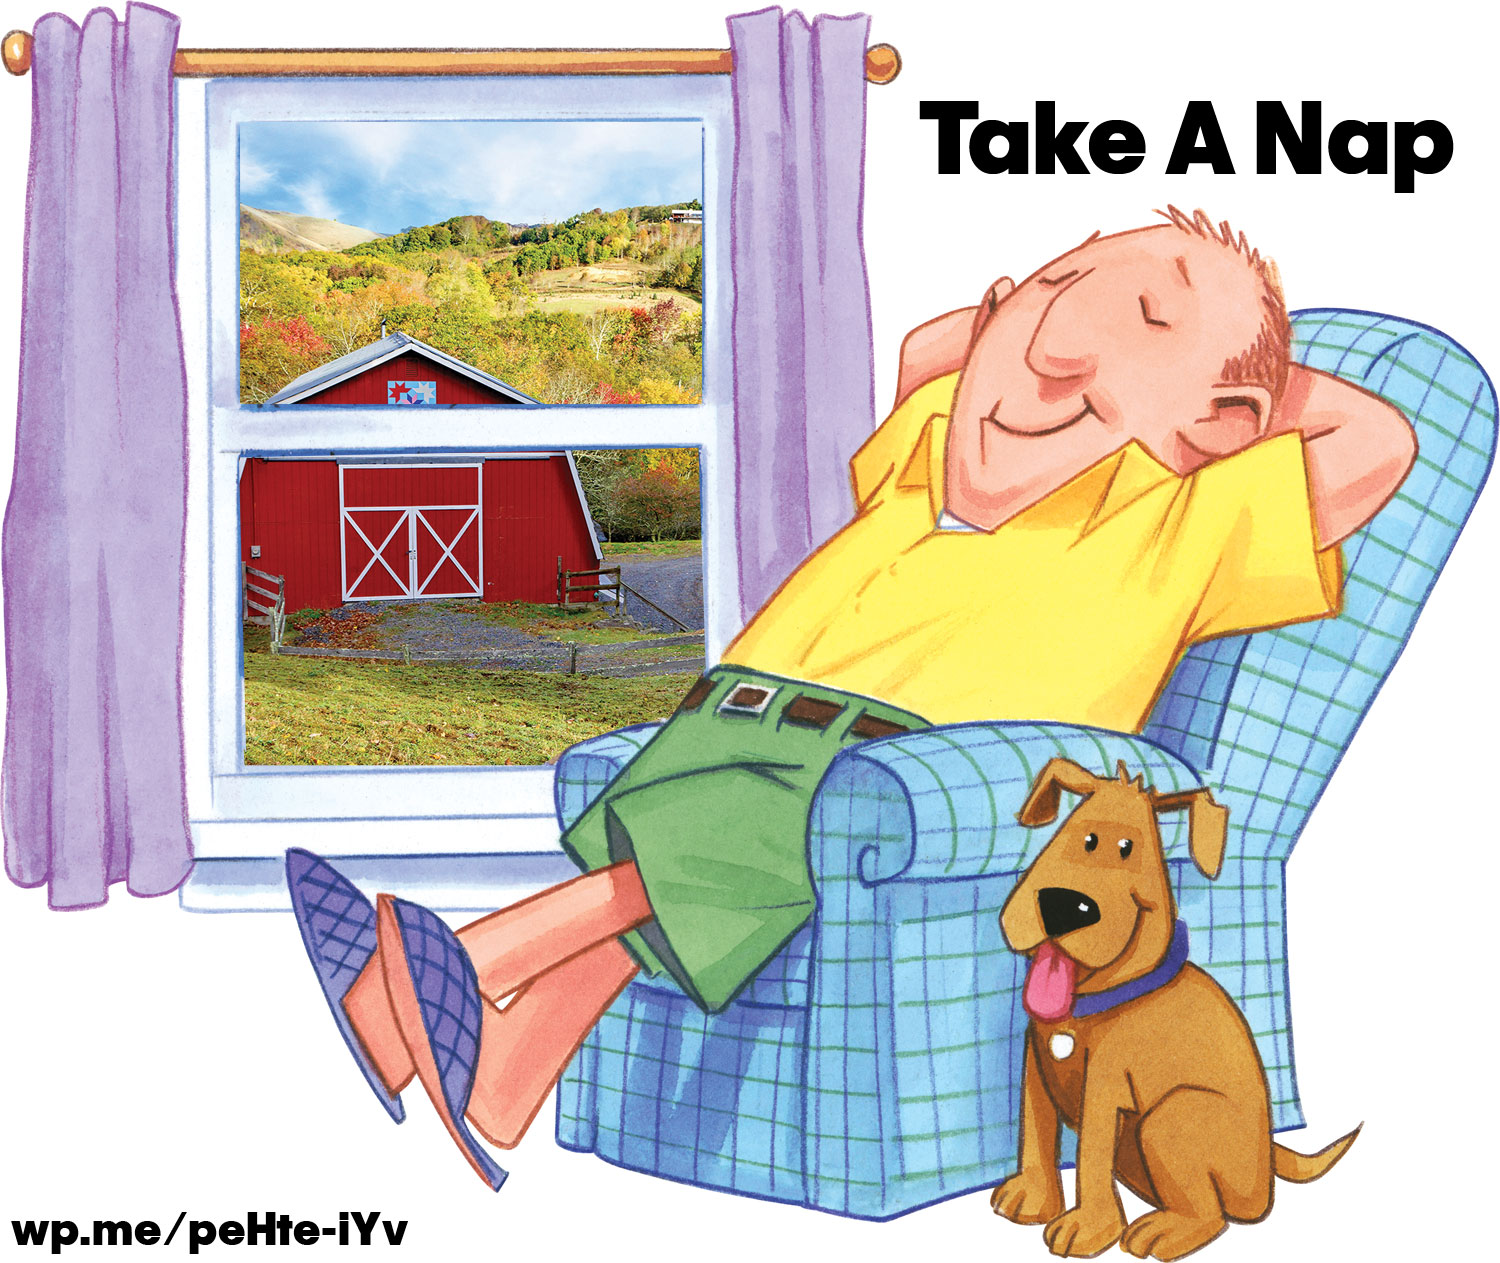 Take a nap - It's Biblical and it is good for you too. #Nap #Napping